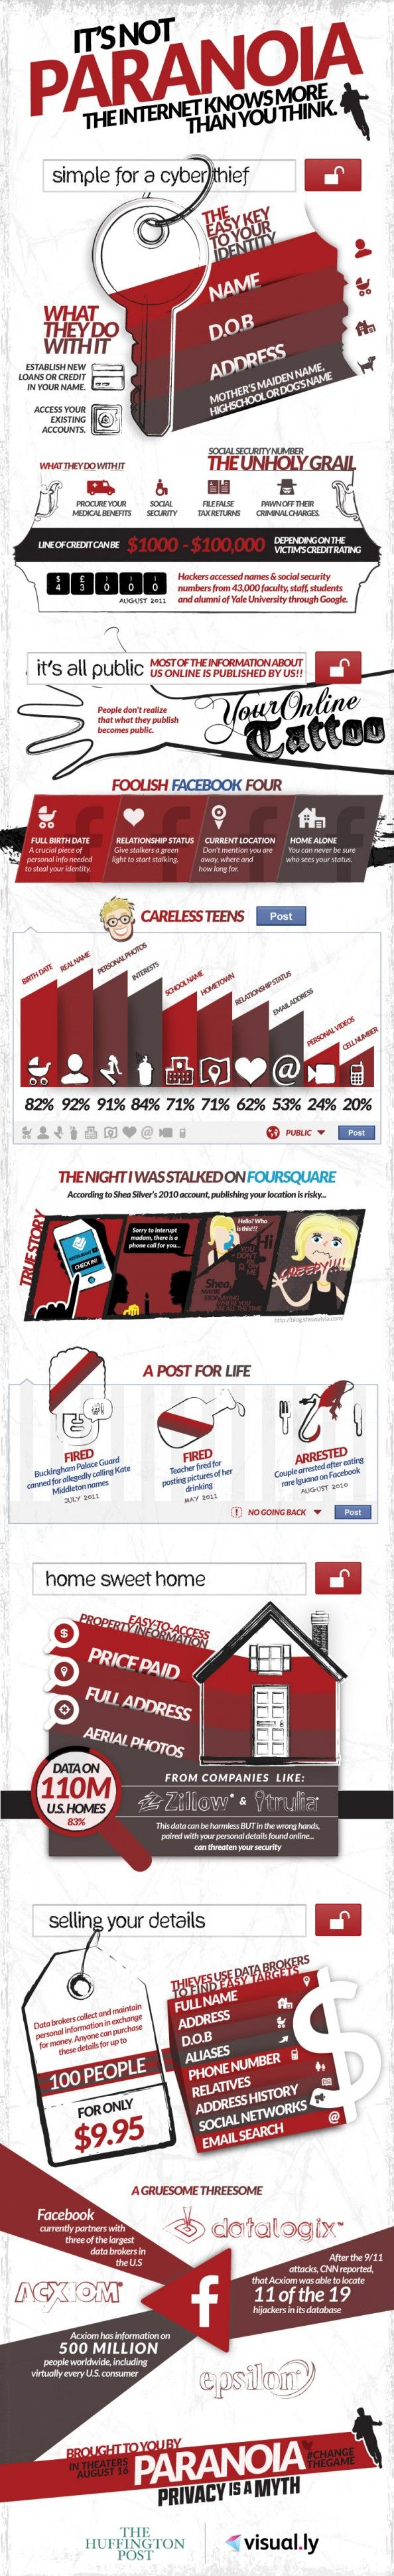 Is It Privacy Paranoia Or Does The Internet Know It All? #infographic